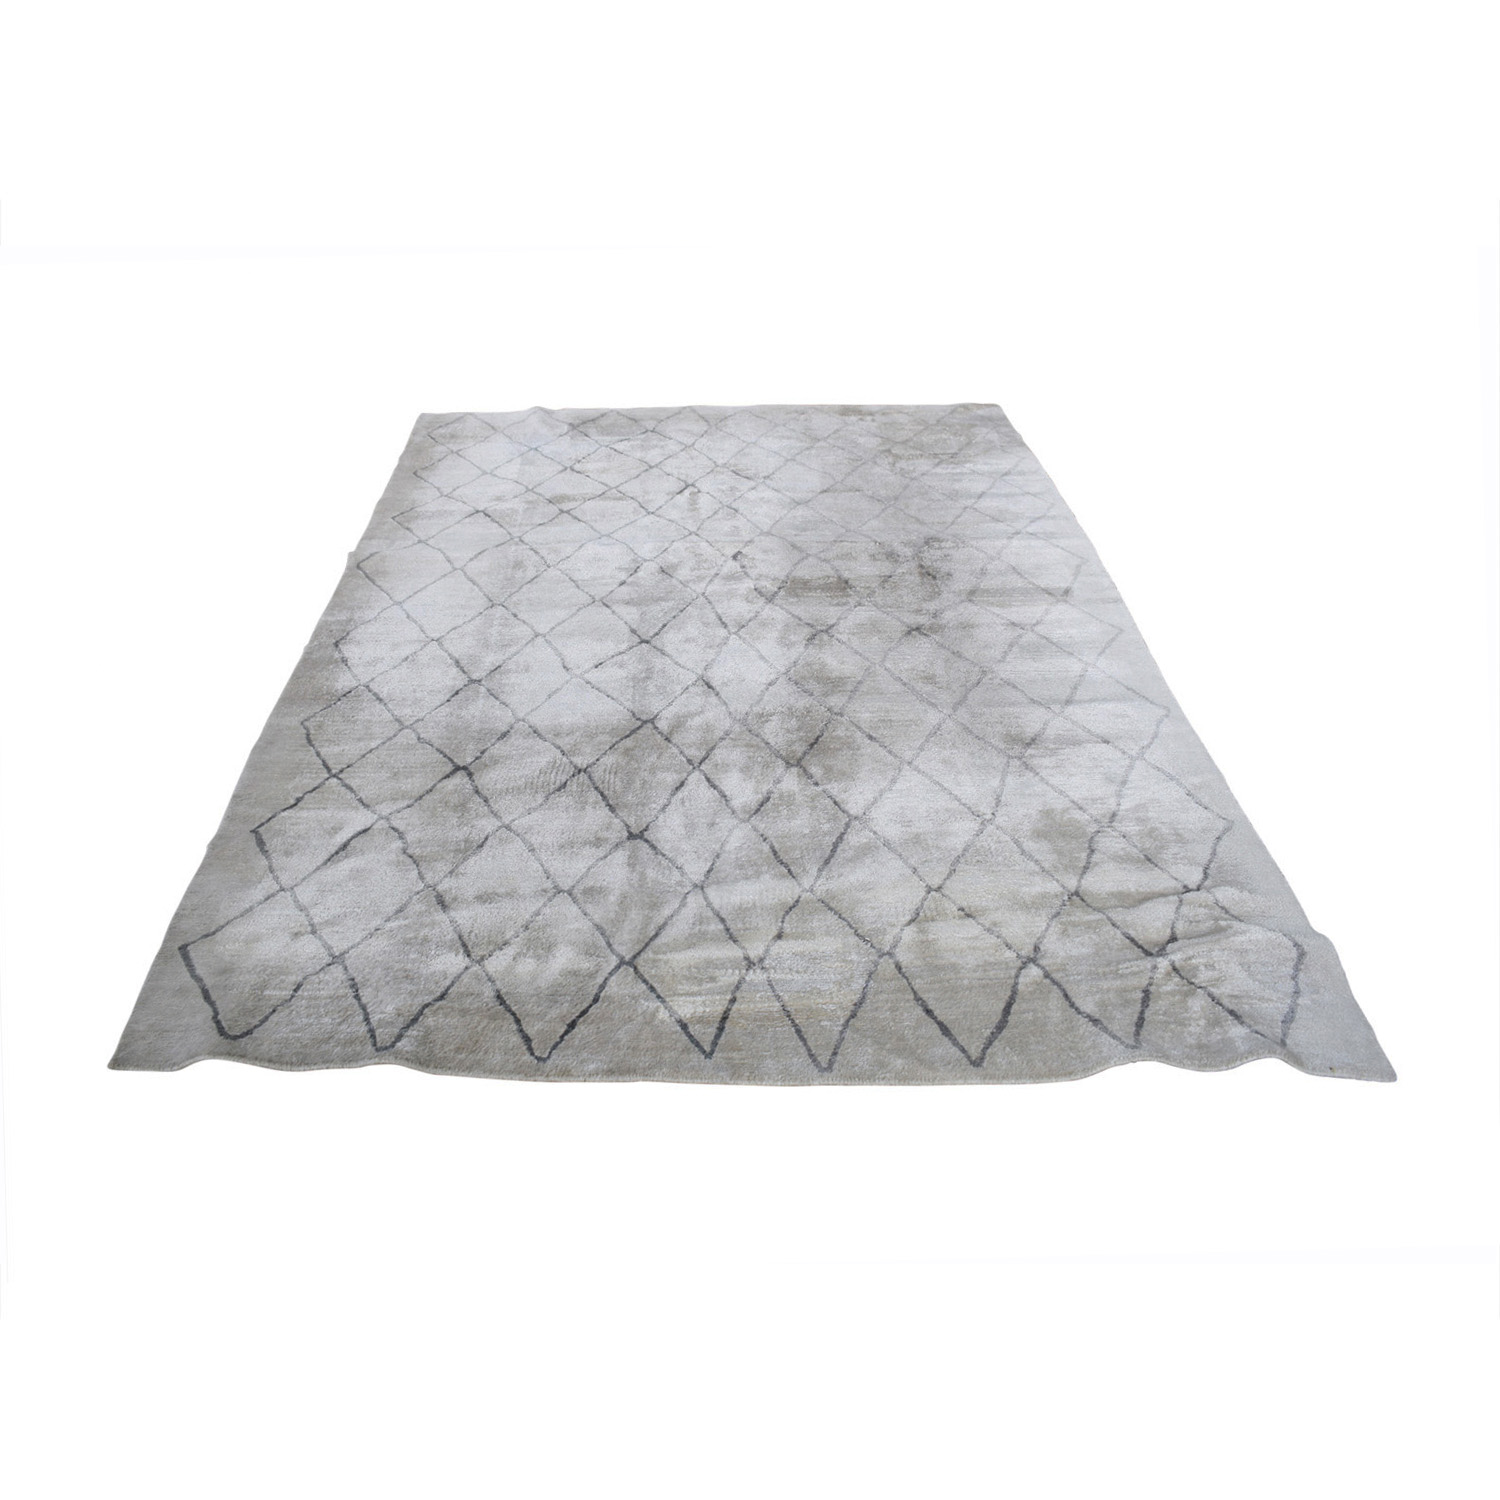 Restoration Hardware Restoration Hardware Arlequin Cream and Grey Rug discount